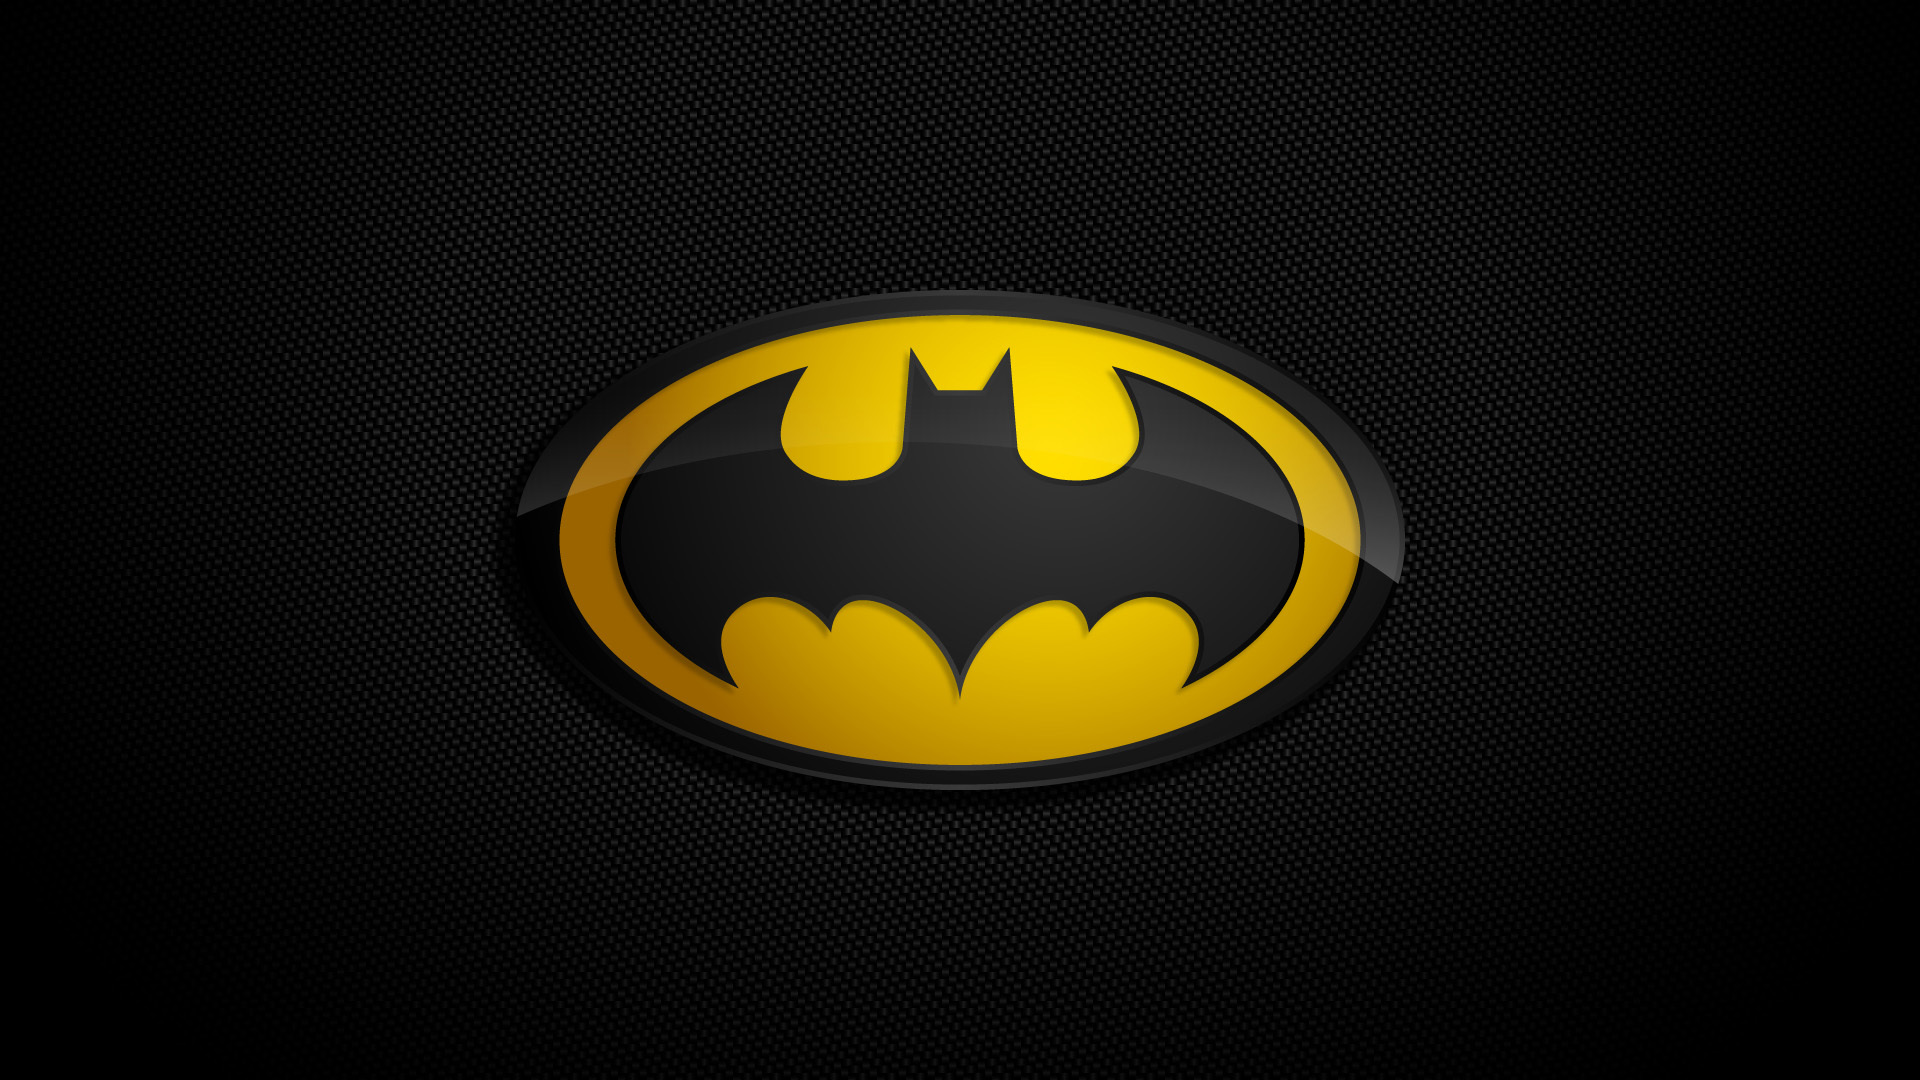 Batman comics logos Batman HD Wallpaper